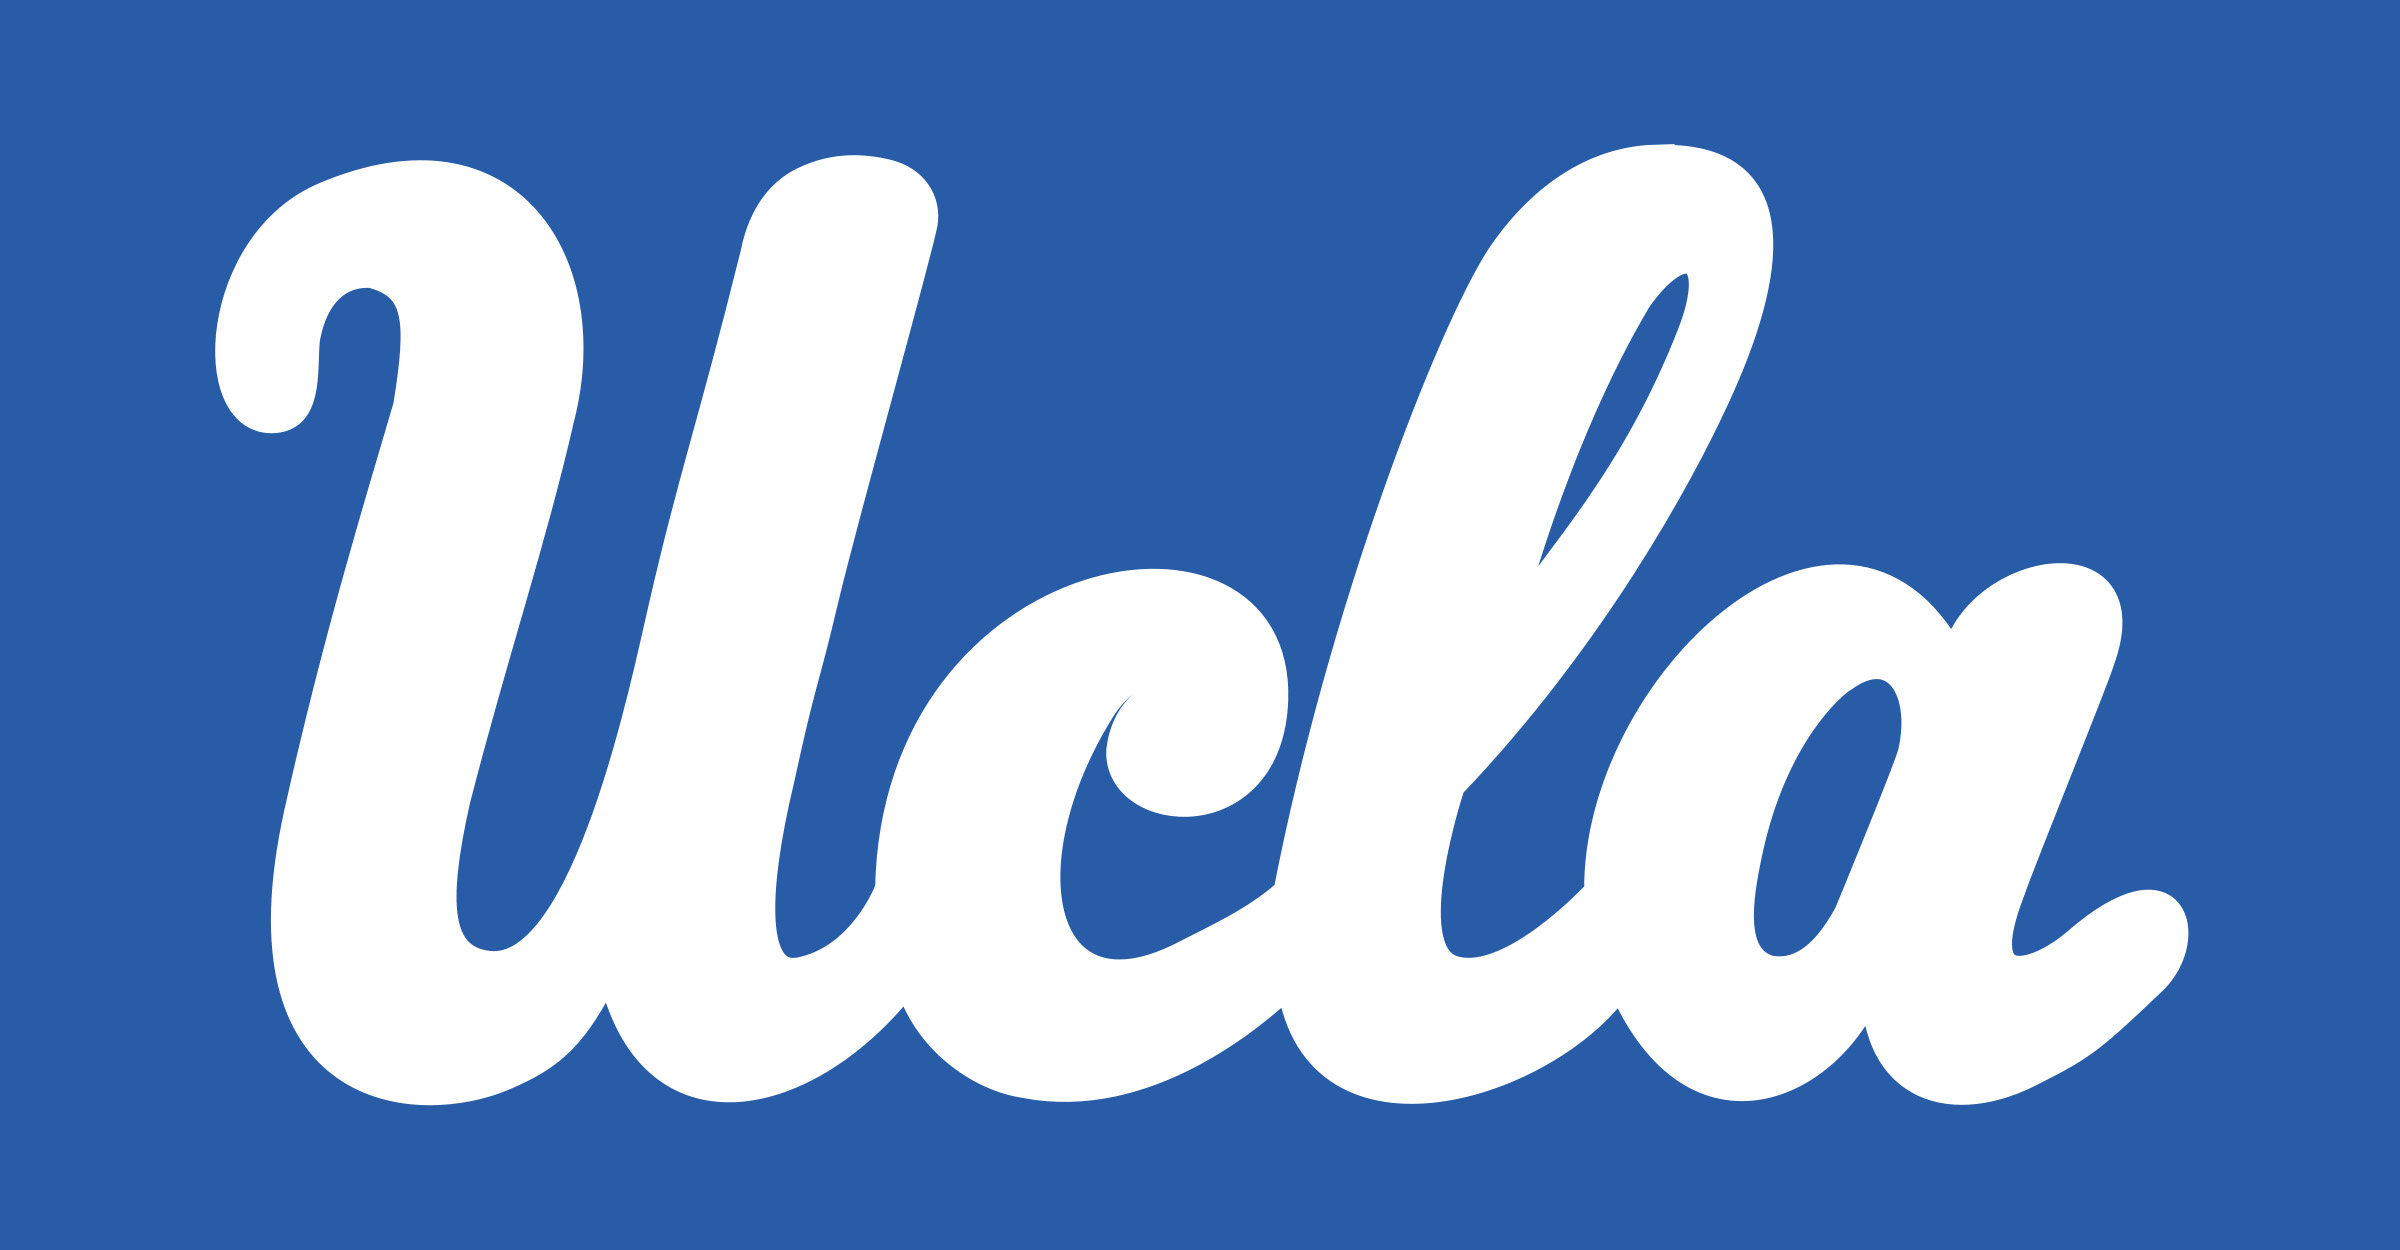 Meaning University of California Los Angeles logo and symbol